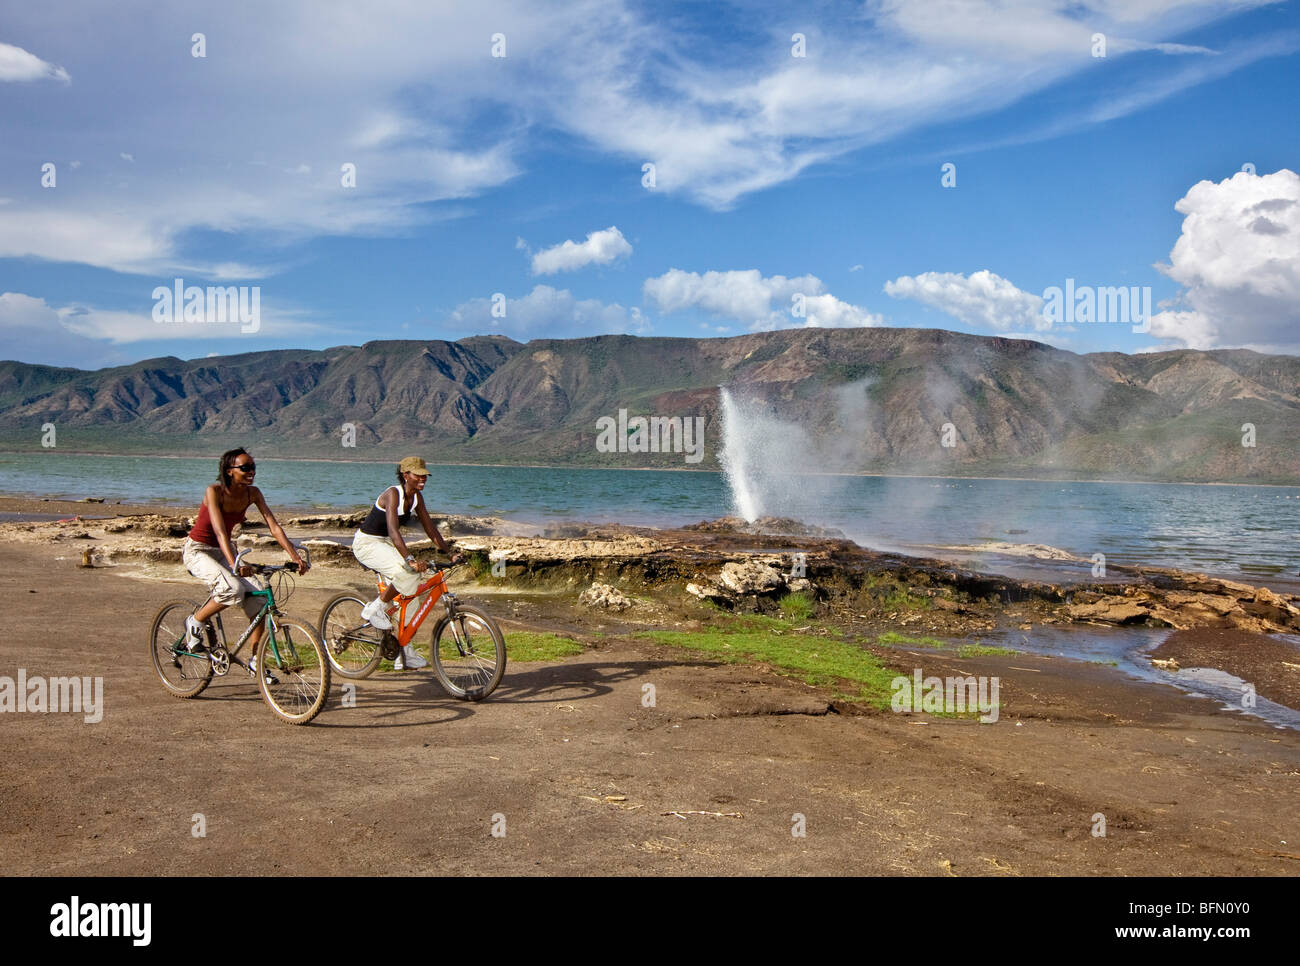 Kenya, Bogoria. Two girls cycle past the geysers and hot springs beside Lake Bogoria, an alkaline lake the Great - Stock Image